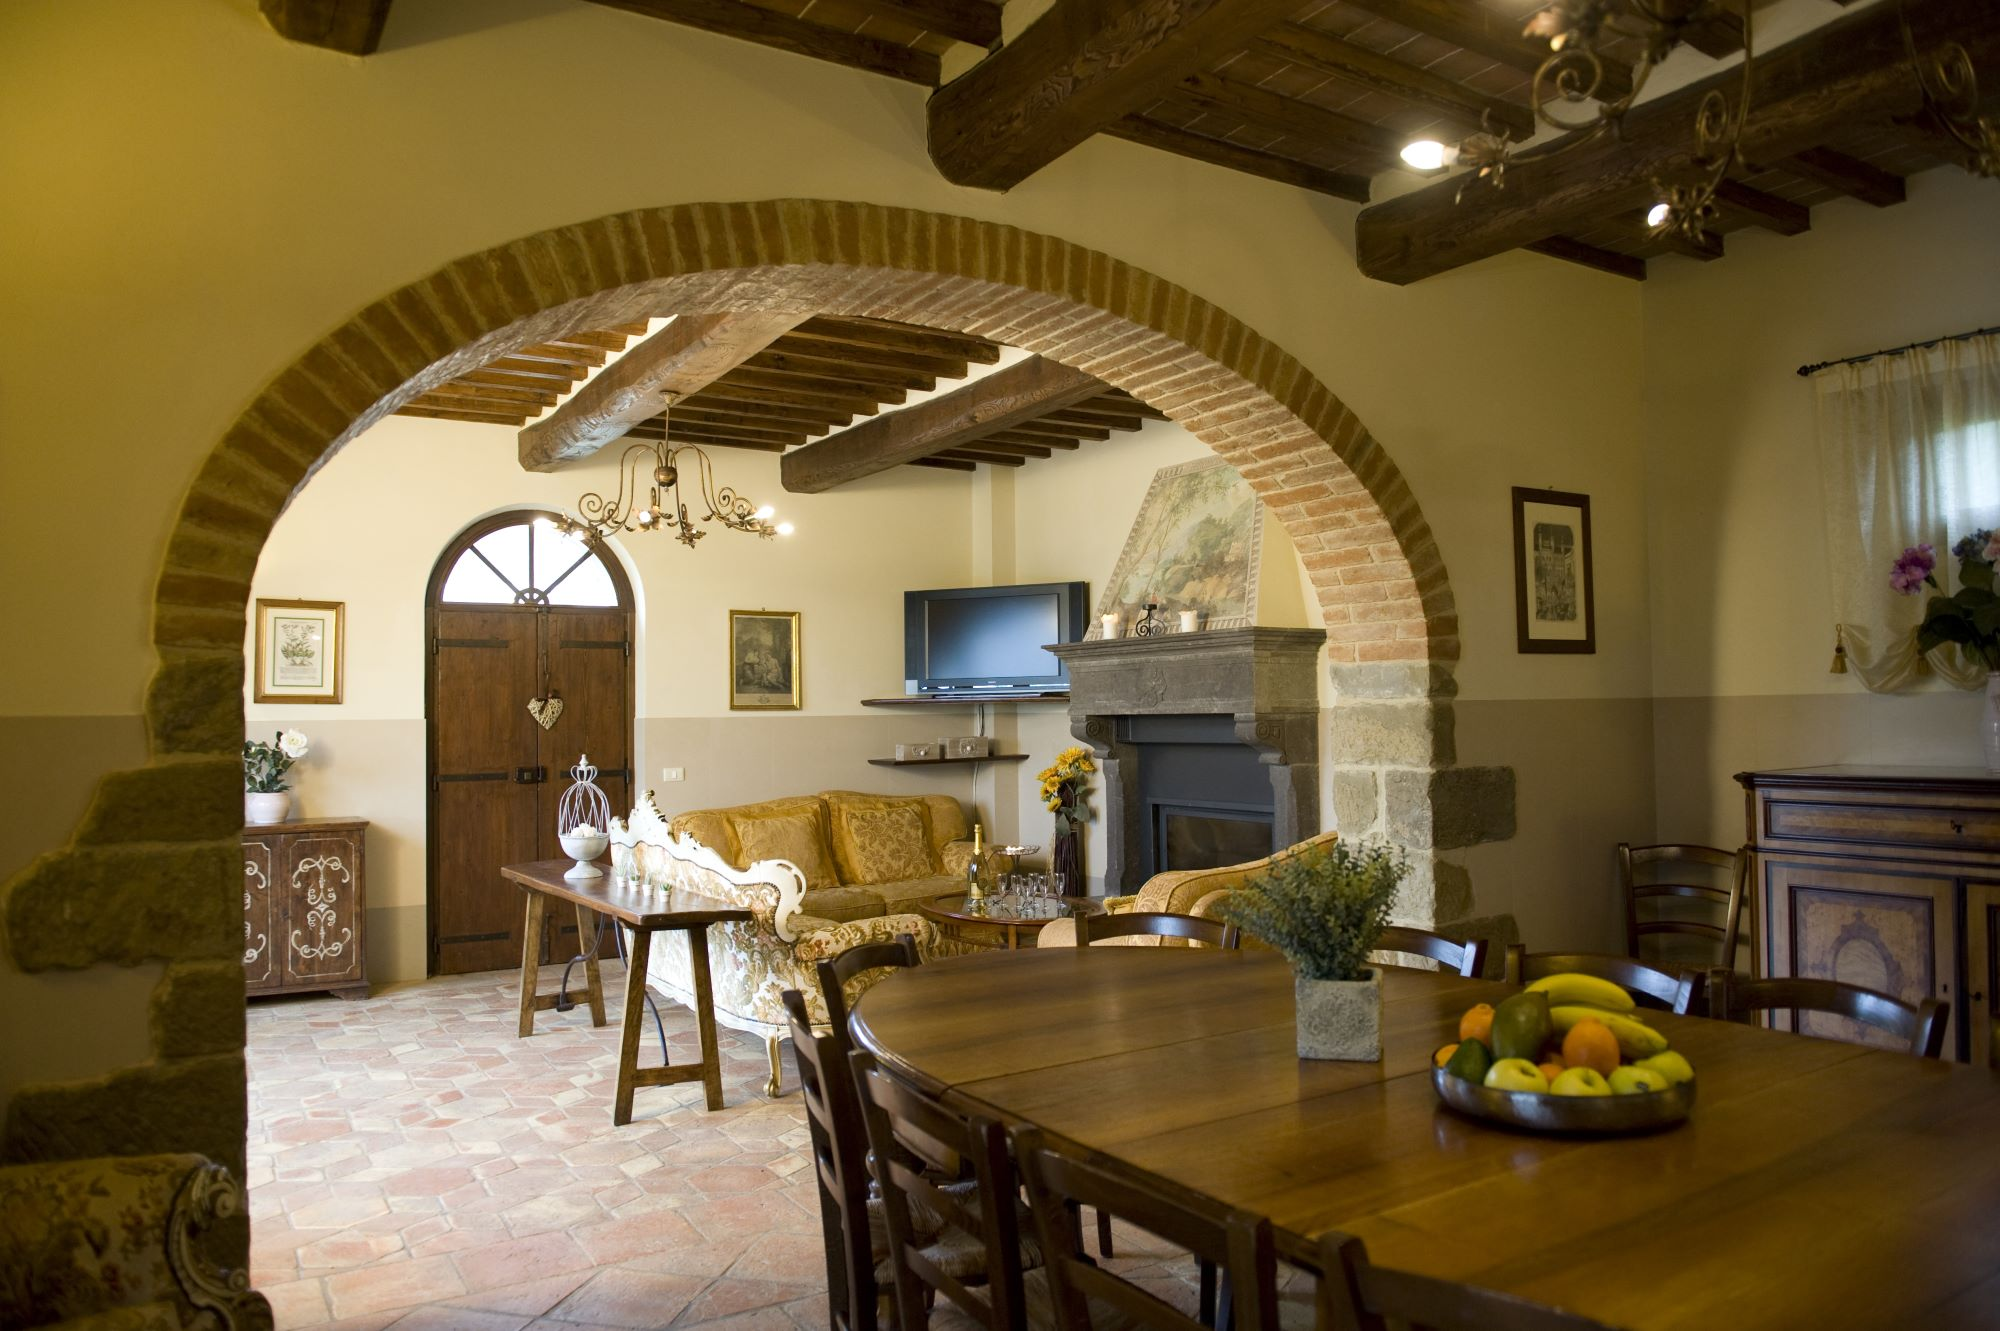 tuscany wedding villas, Perfect for large groups,great communal areas